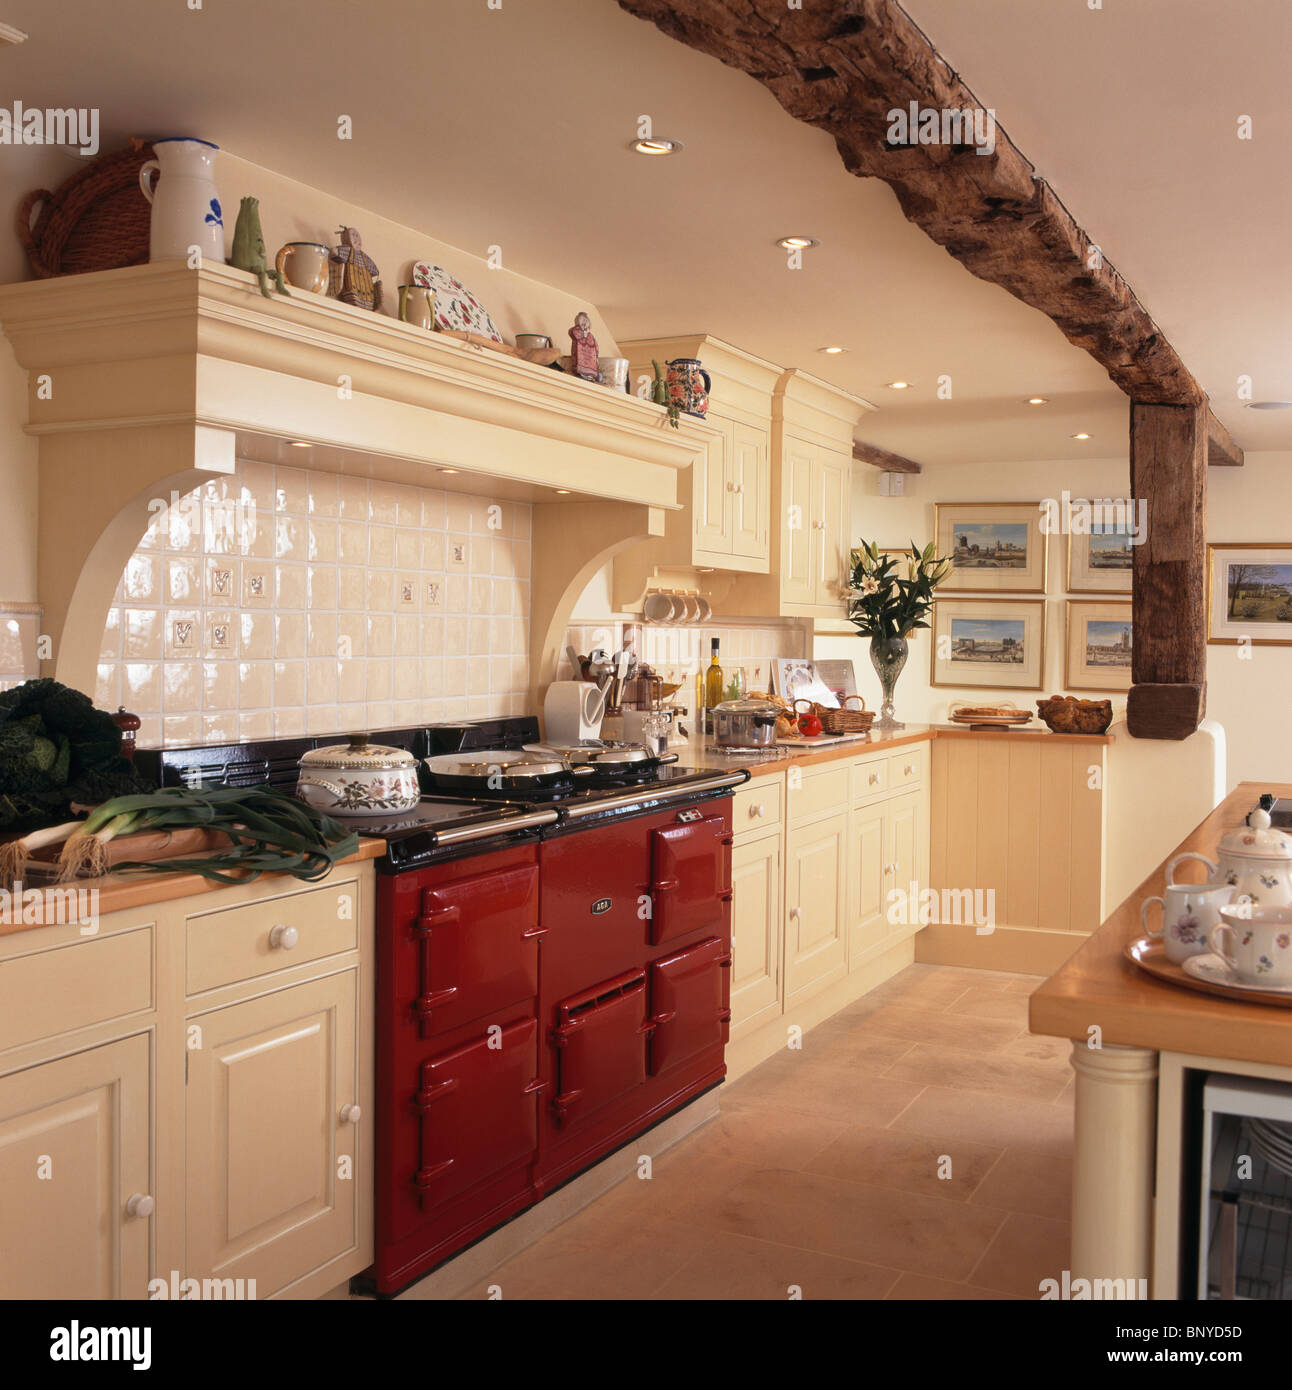 Red Aga Oven In Cream Country Kitchen With Large Rustic